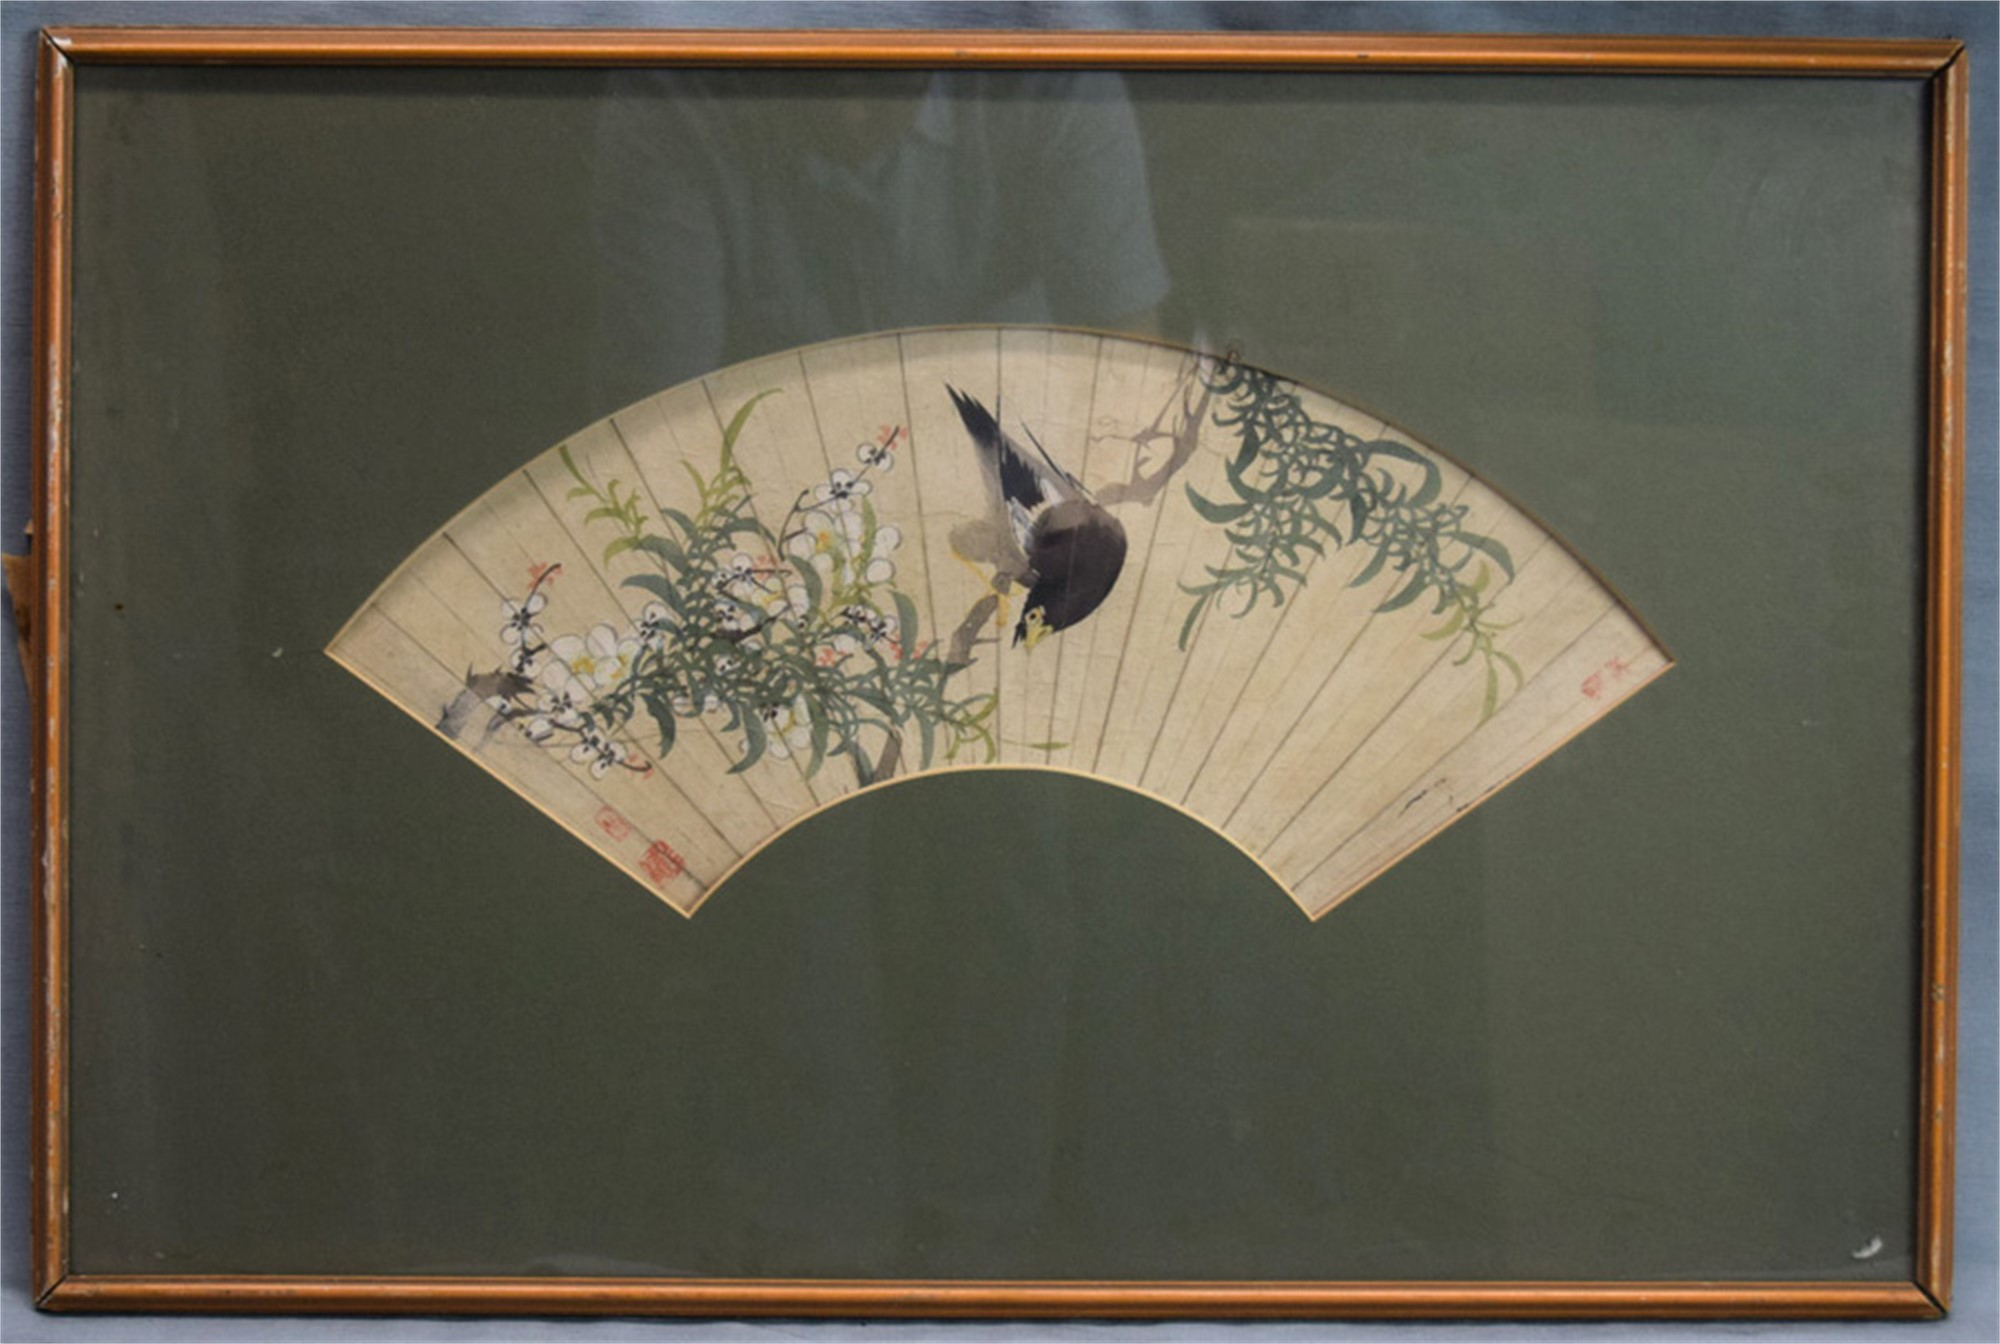 FAN PAINTING, BIRD PERCHED ON GREEN BRANCH WITH WHITE BLOSSOMS